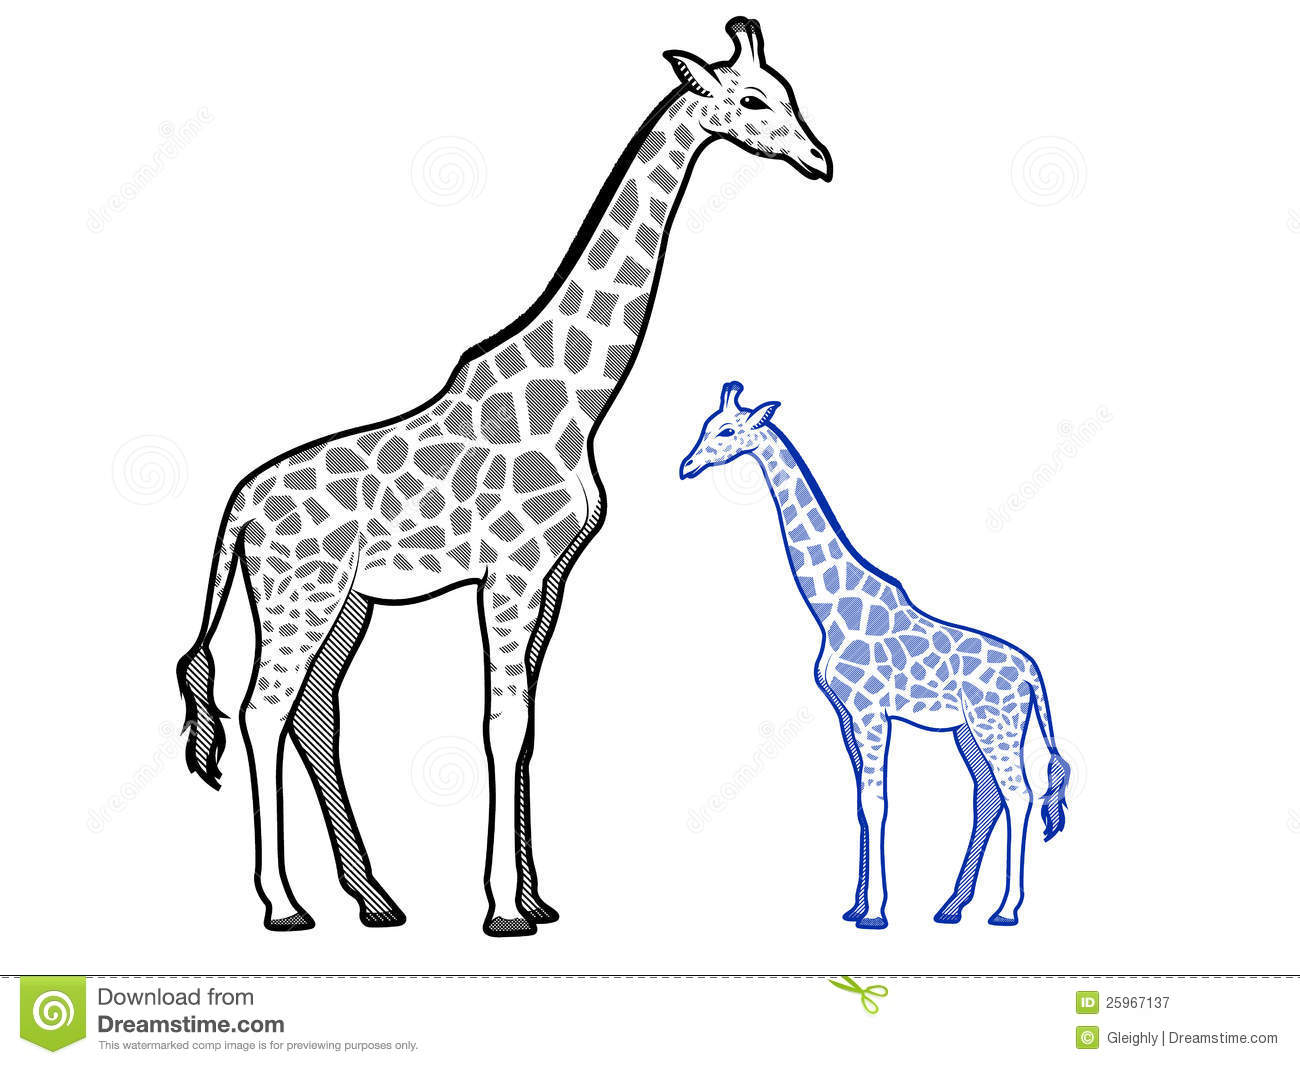 Giraffe Outlines stock vector. Illustration of realistic ...